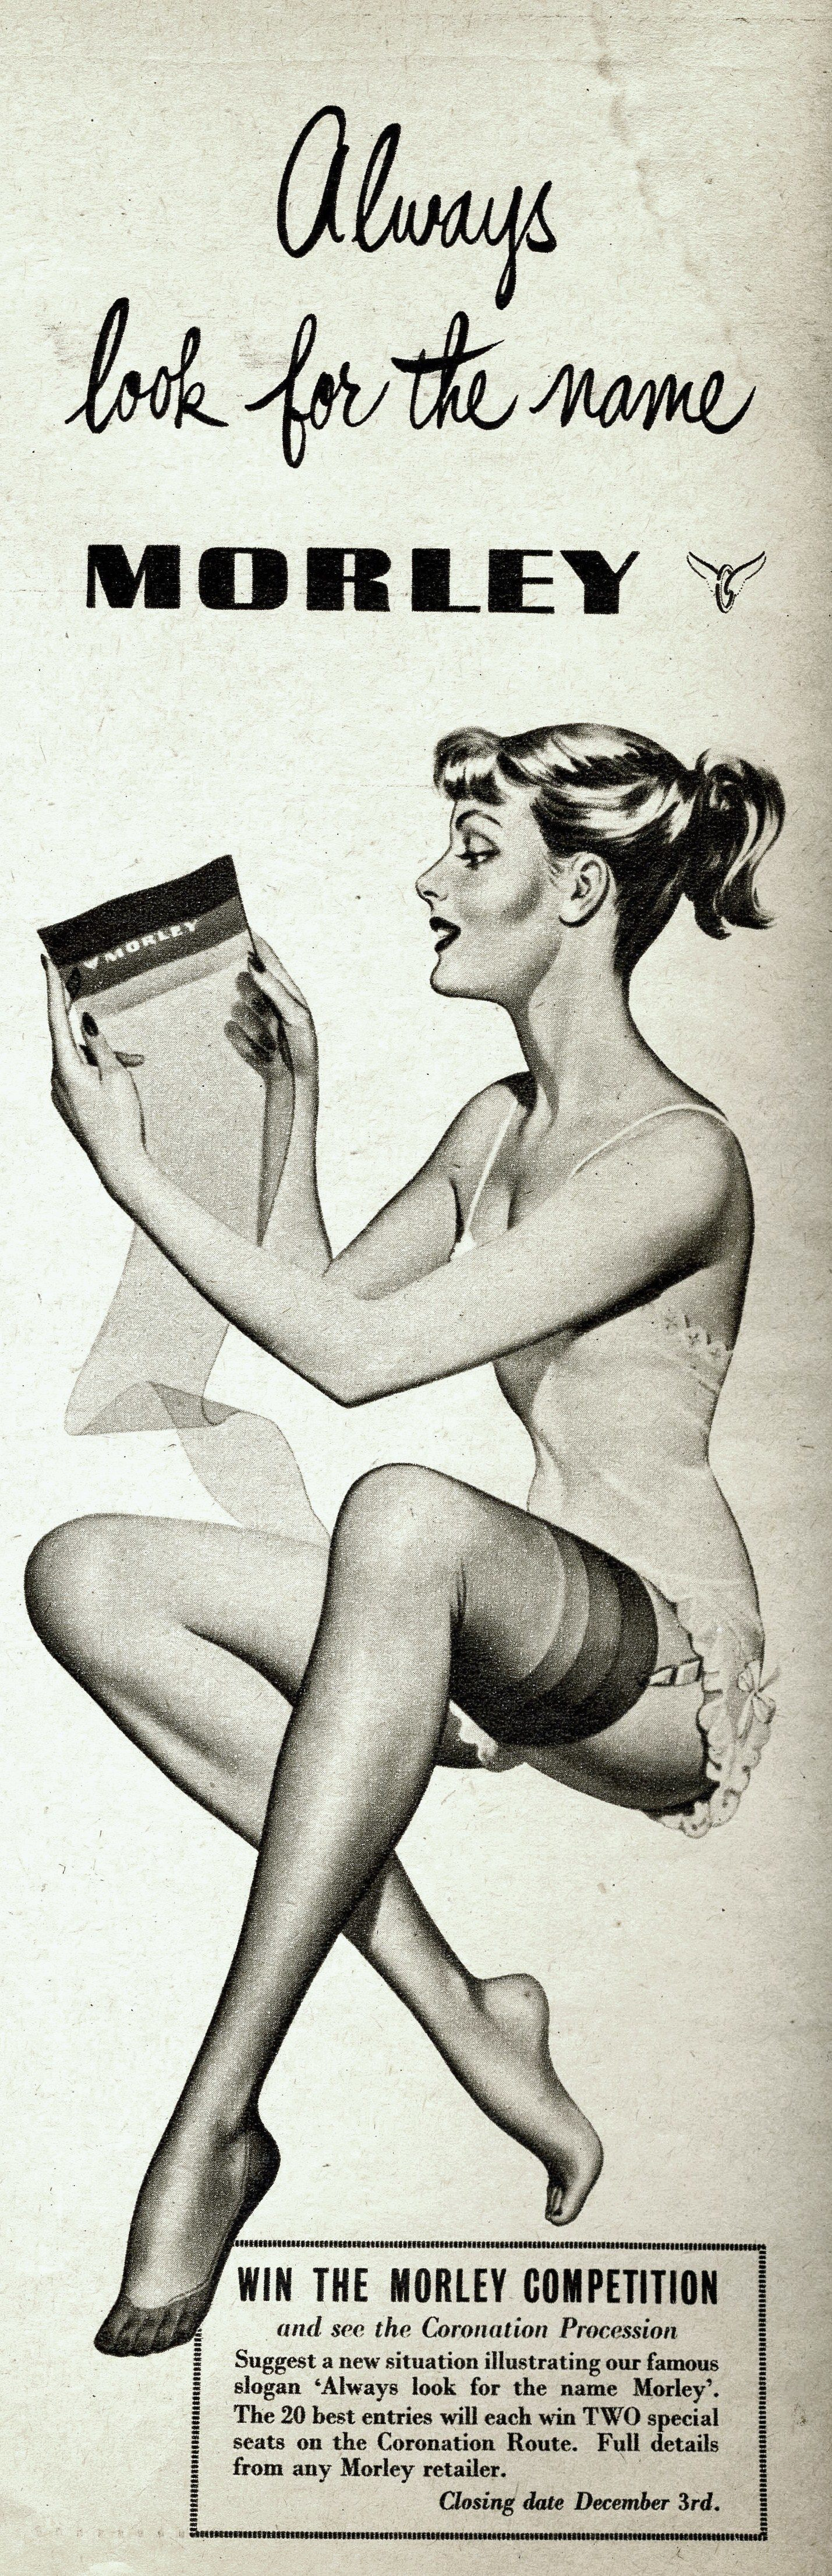 Morley Stockings Picturegoer 15-11-1952